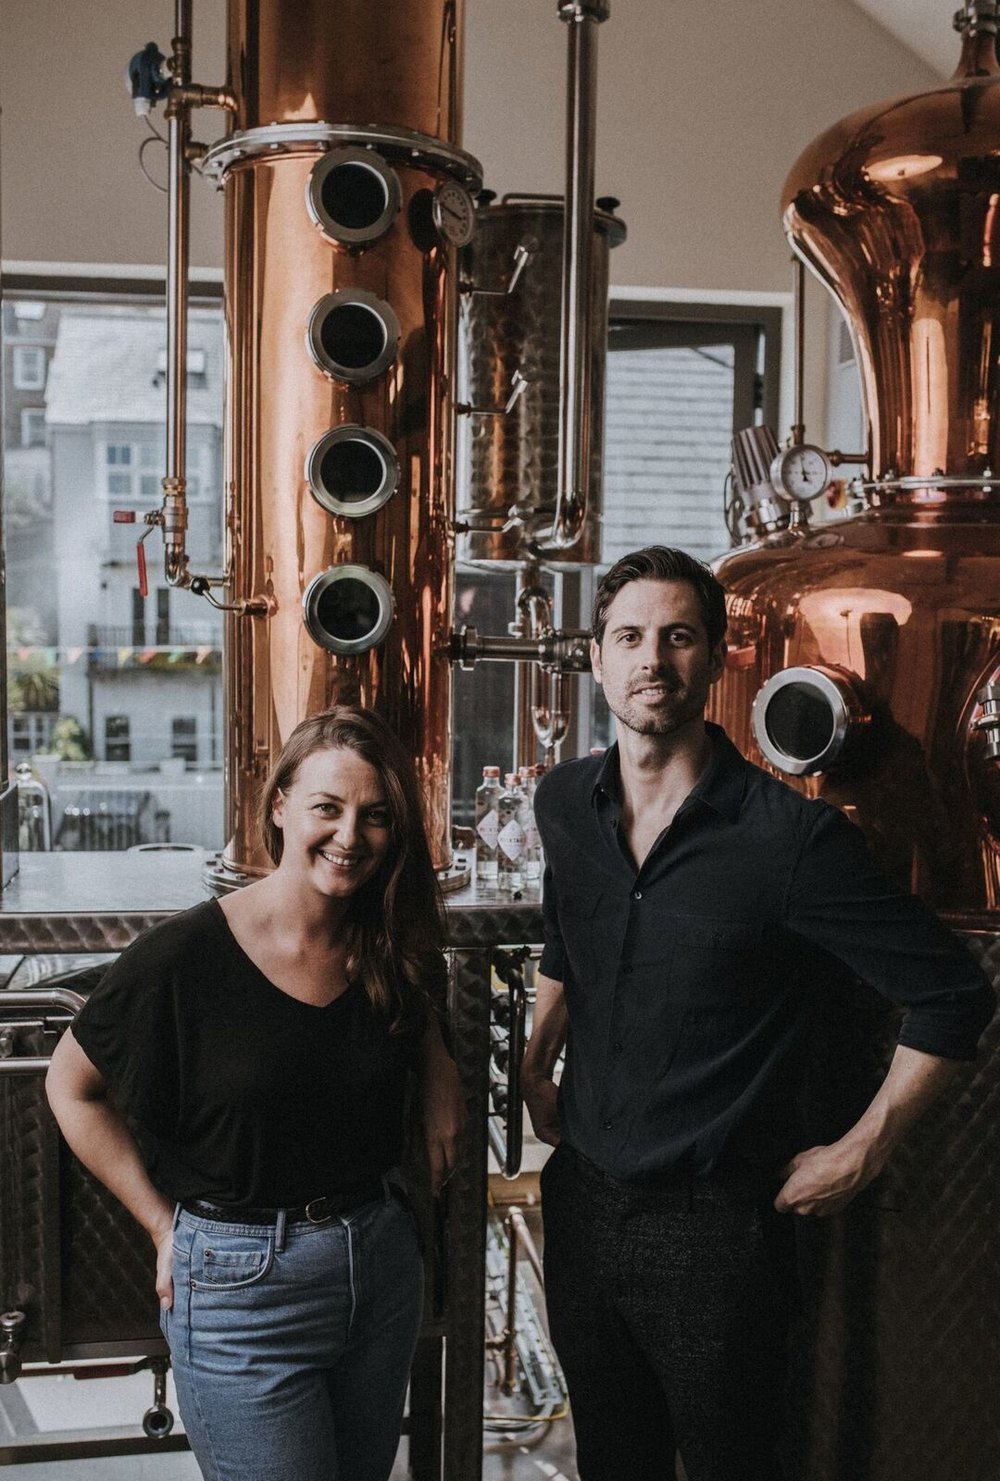 THE DISTILLERS   -  We're Chris and Katie. We met in 2013 and shared our passion for mixology. We started experimenting with many unique, botanical ingredients to see if we could create bar quality cocktails that we serve at our restaurant, with integrity. After endless experimenting, we found a way to bottle our creations with character.    E: katie@rocktails.co.uk & chris@rocktails.co.ukT: 01364 73779Rocktails, 17 Brentmill, Long Meadow, Devon, TQ10 9YT.